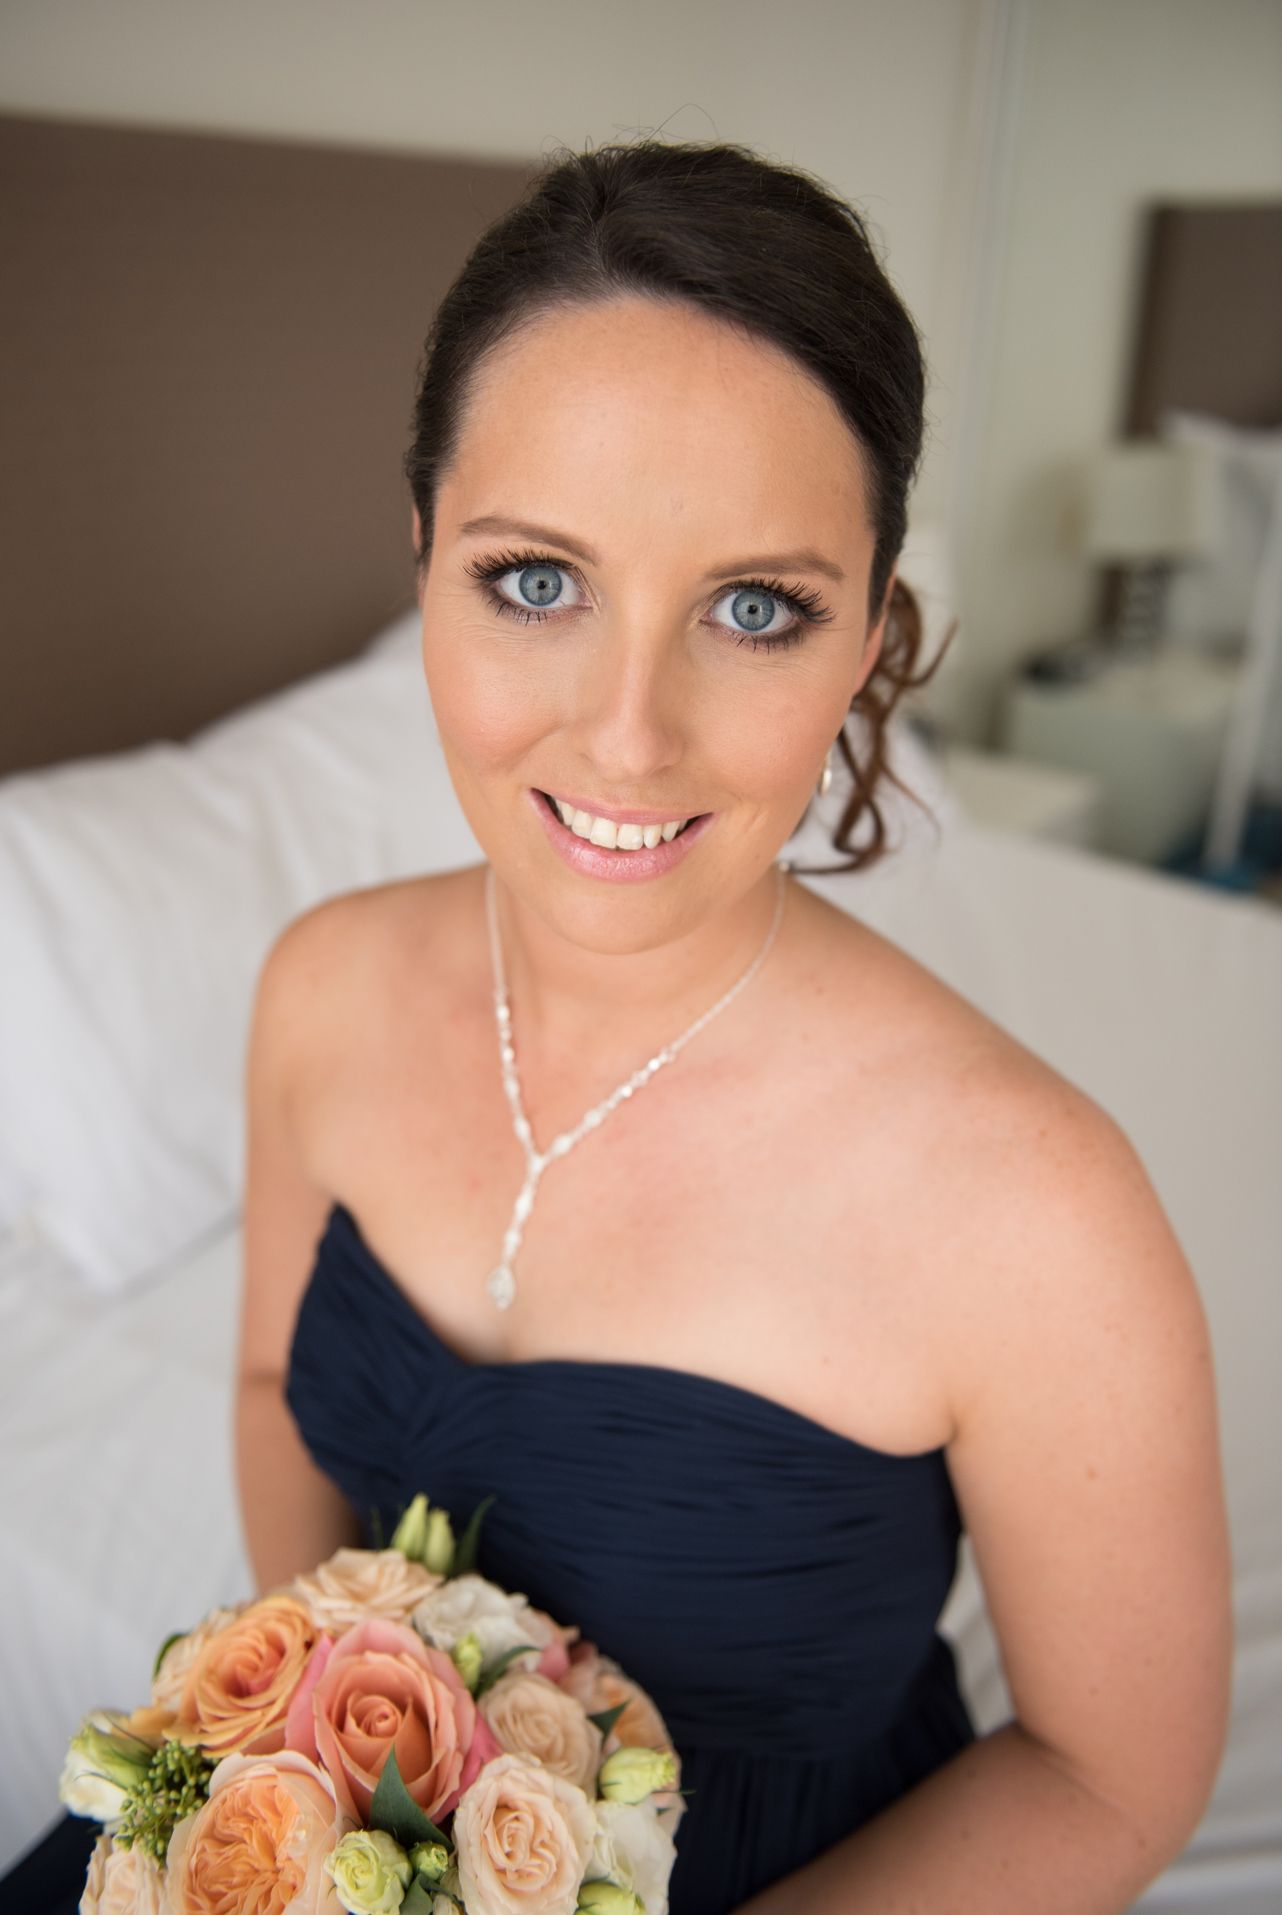 Beautiful_bridesmaid_looking_at_the_camera_holding_flowers